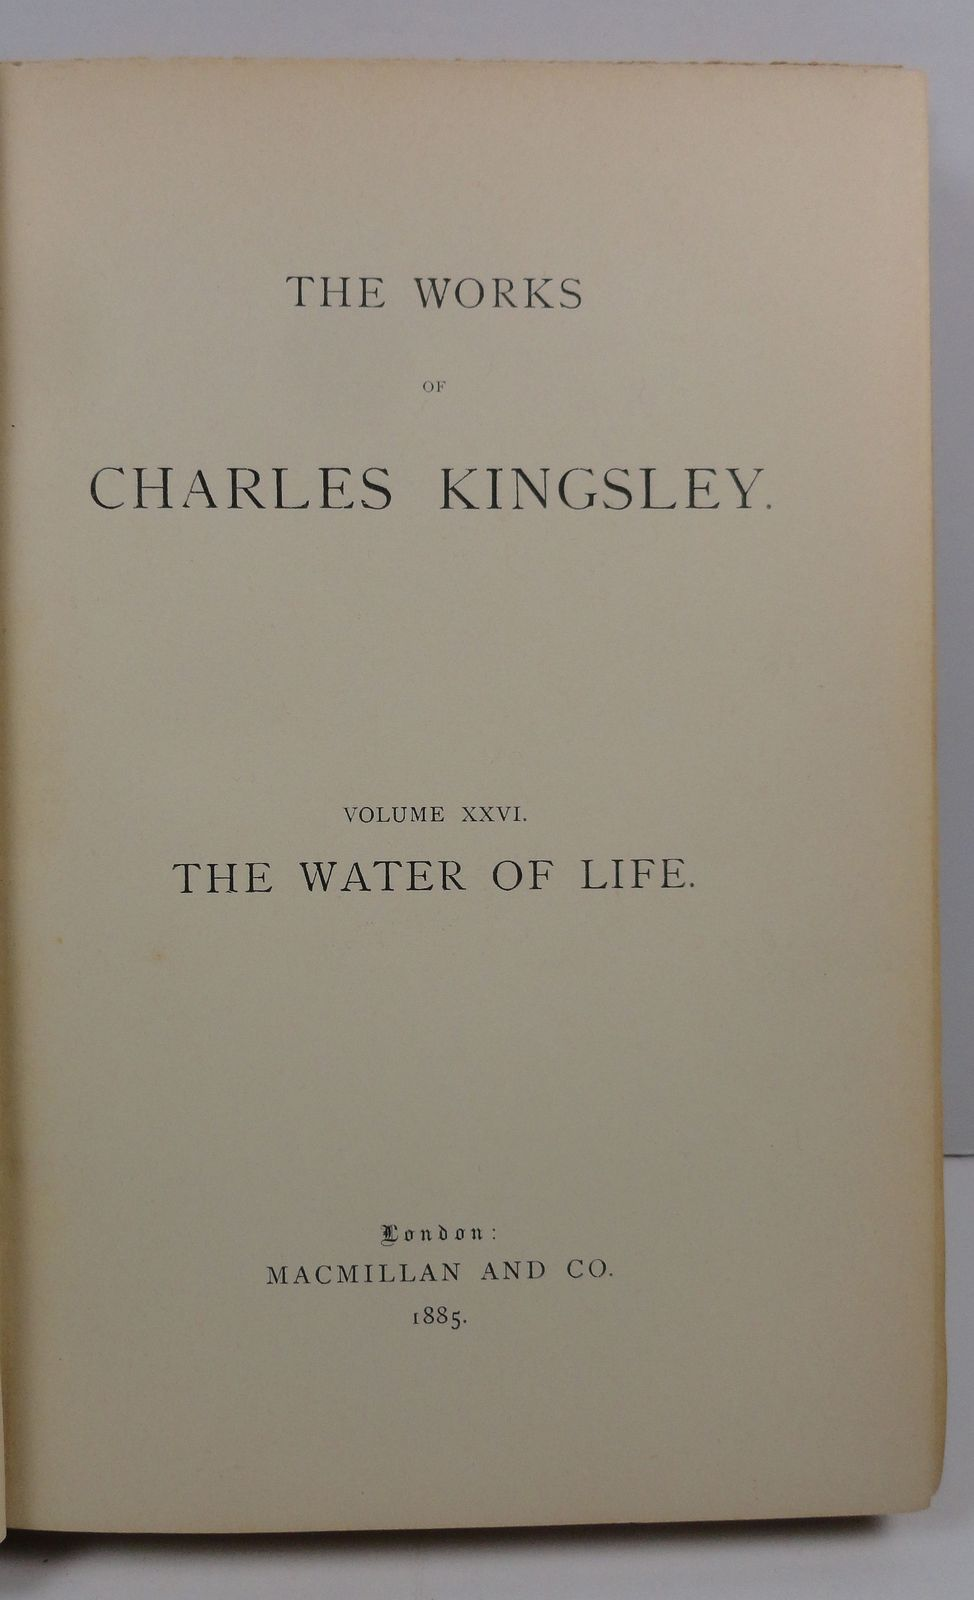 The Works of Charles Kingsley Vol. 26 The Water of Life 1885